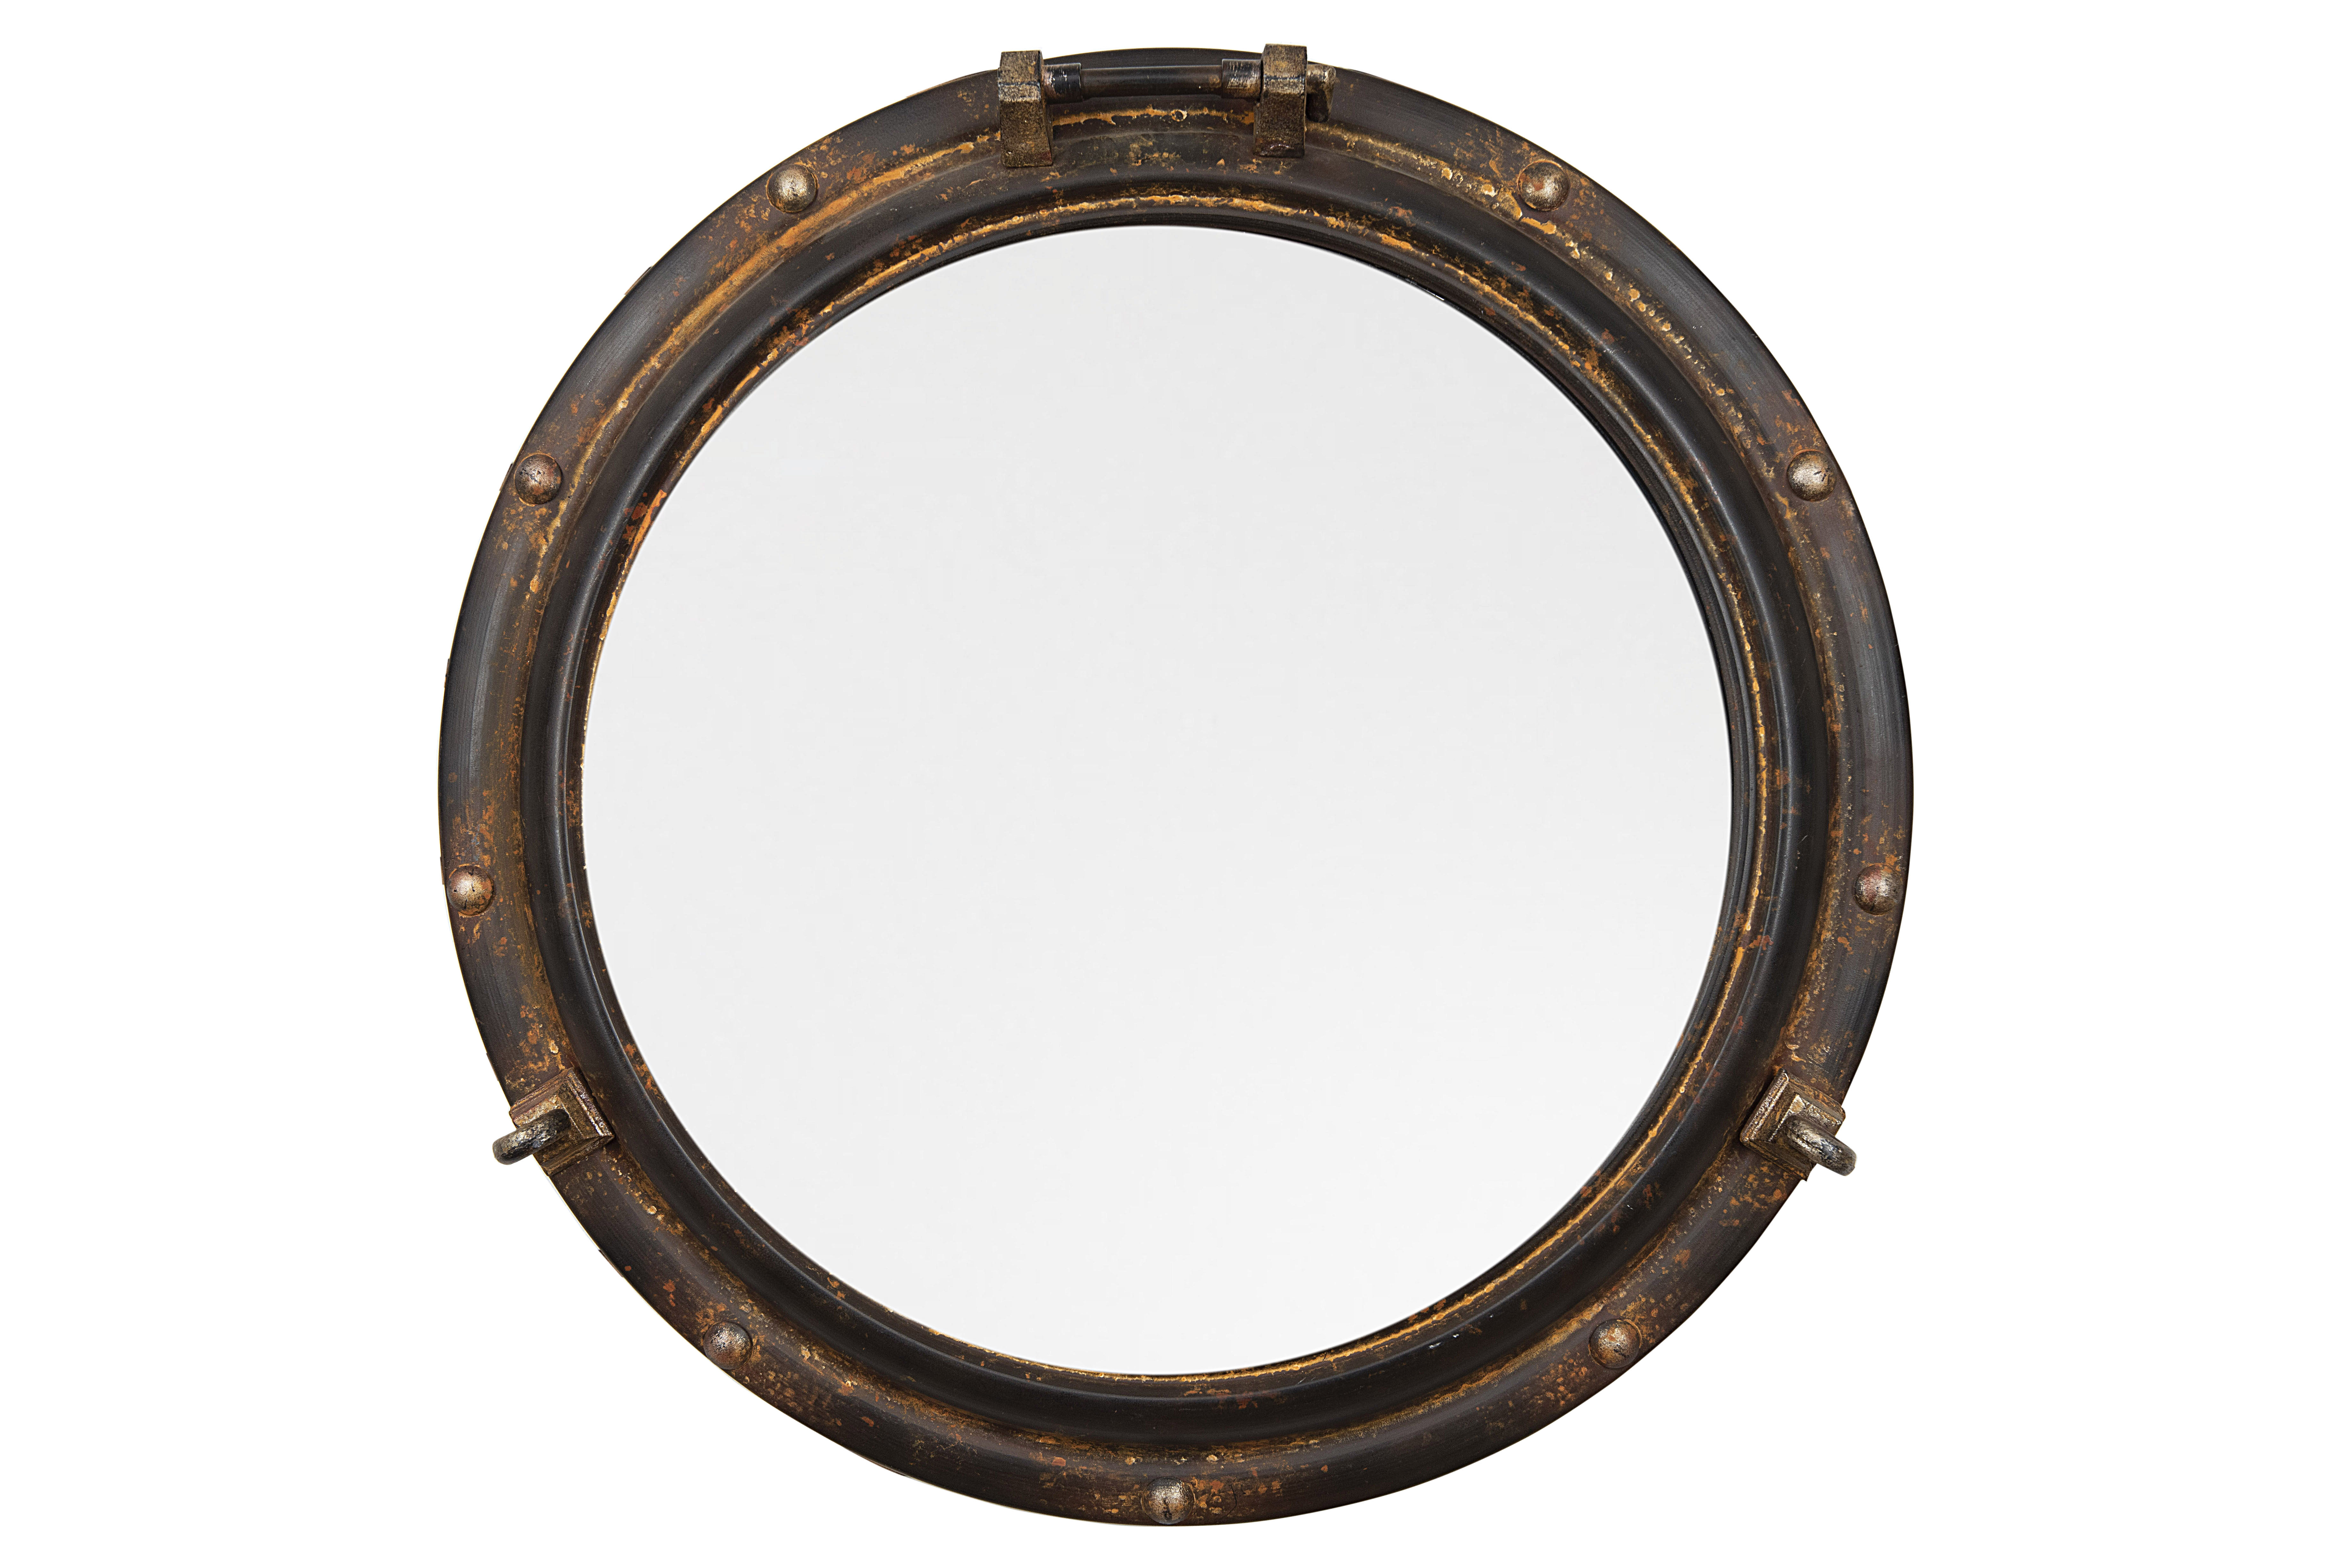 Alie Traditional Beveled Distressed Accent Mirror Inside 2019 Alie Traditional Beveled Distressed Accent Mirrors (View 4 of 20)